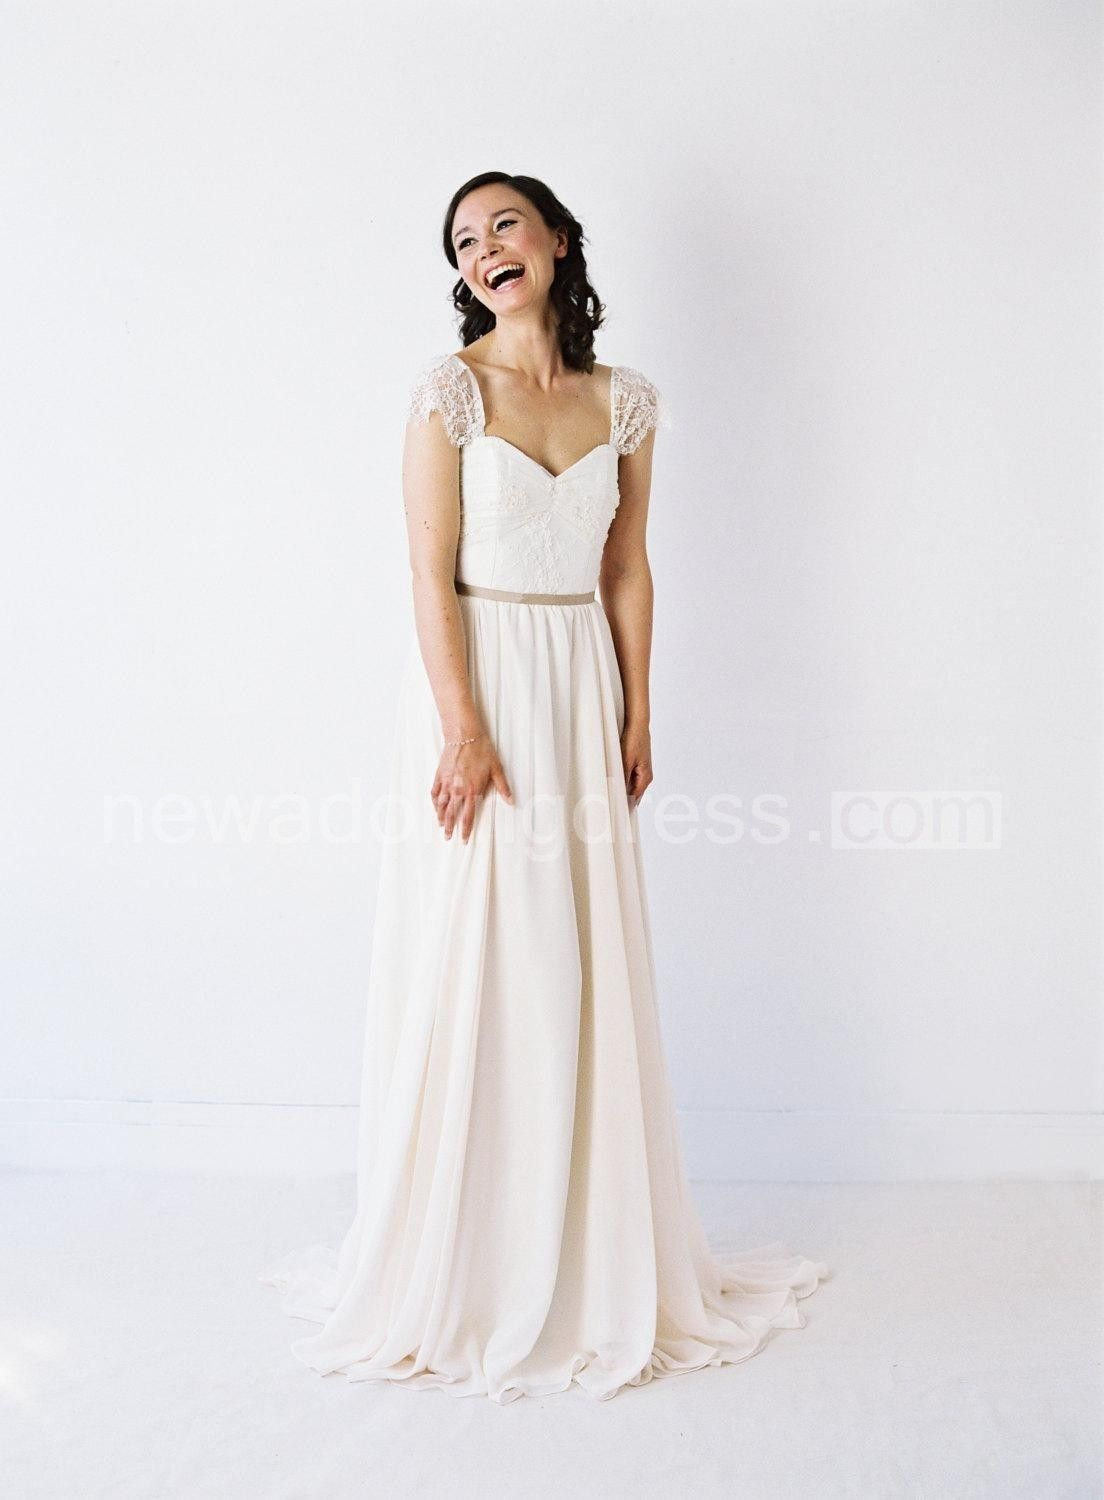 Chiffon wedding dresses  TwoToned Sweetheart Neck Pleated Chiffon Wedding Dress With